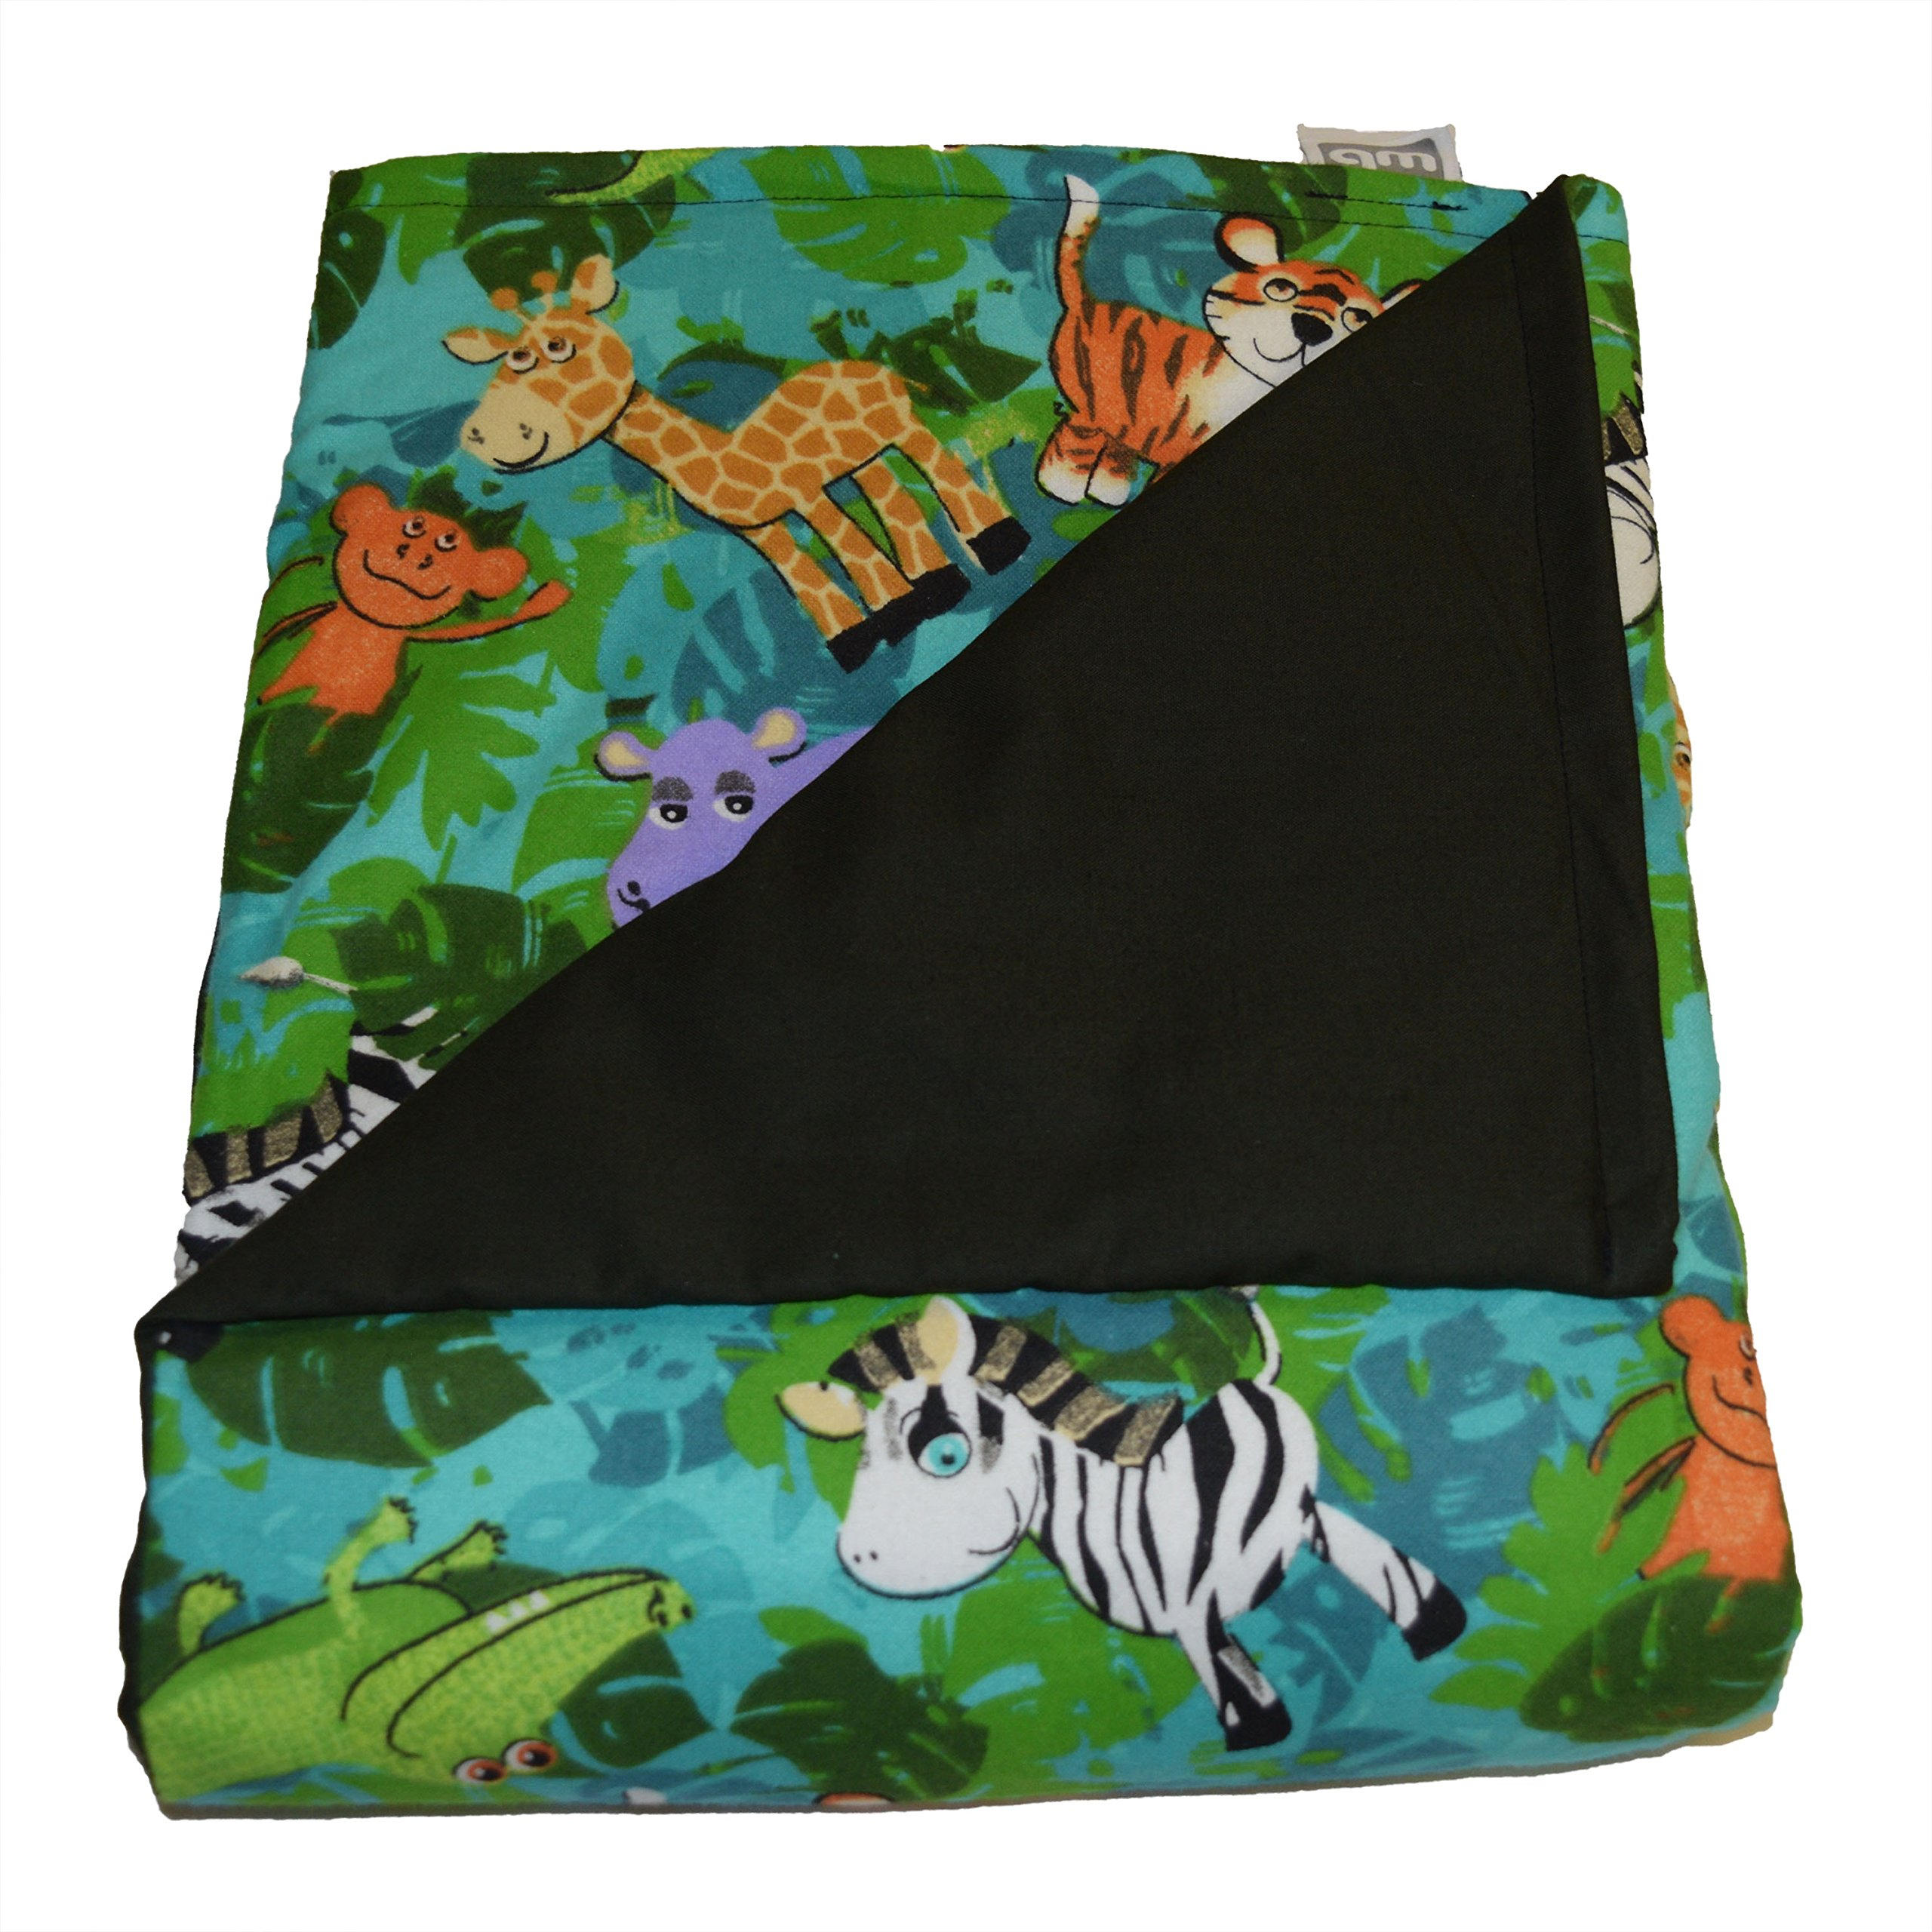 WEIGHTED BLANKETS PLUS LLC - CHILD SMALL WEIGHTED BLANKET - JUNGLE - COTTON/FLANNEL (48''L x 30''W) 5lb MEDIUM PRESSURE